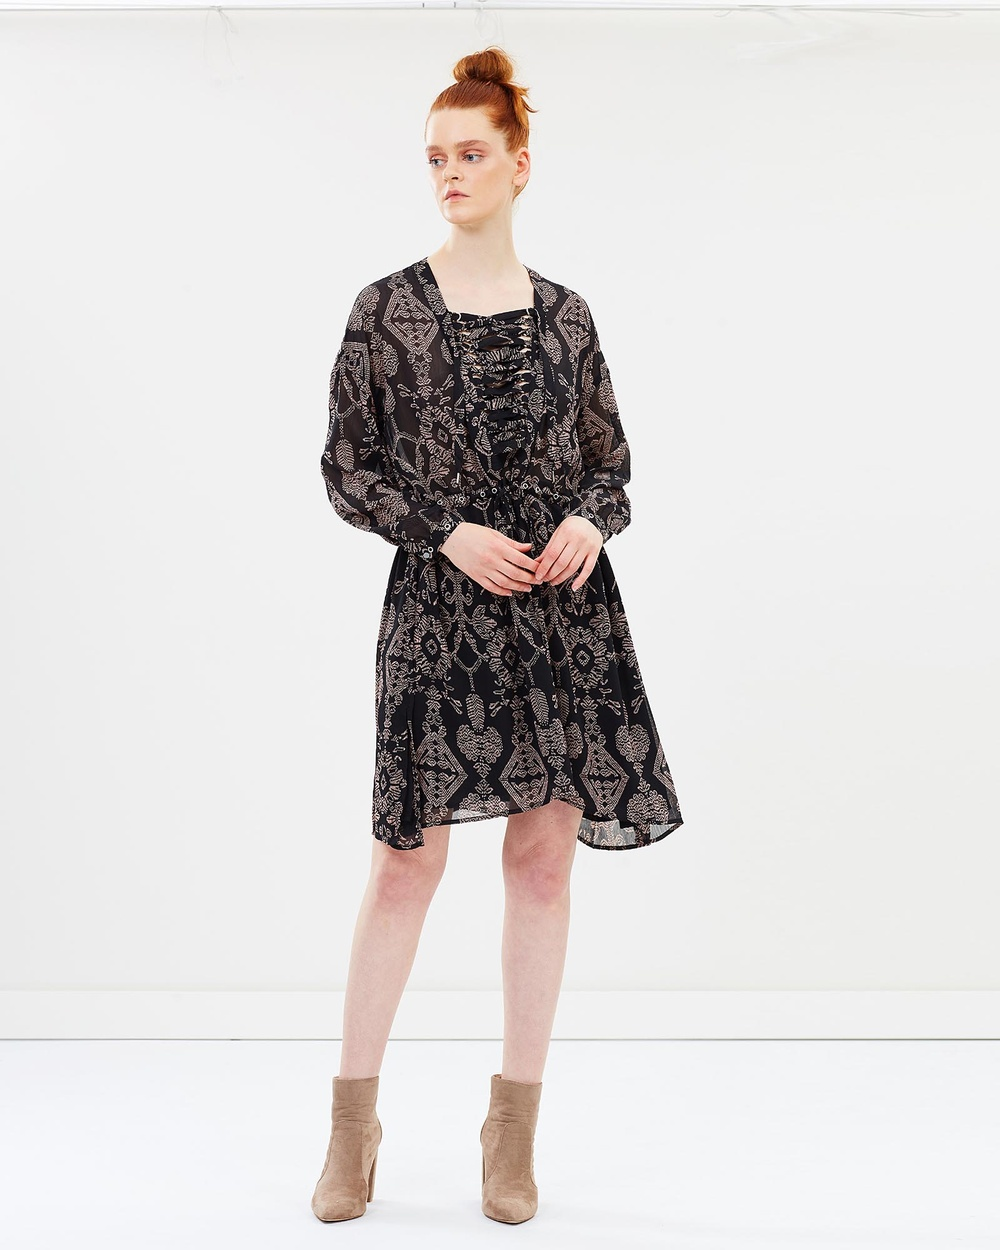 Maison Scotch Lace Up Eyelet Dress Printed Dresses Black Lace-Up Eyelet Dress